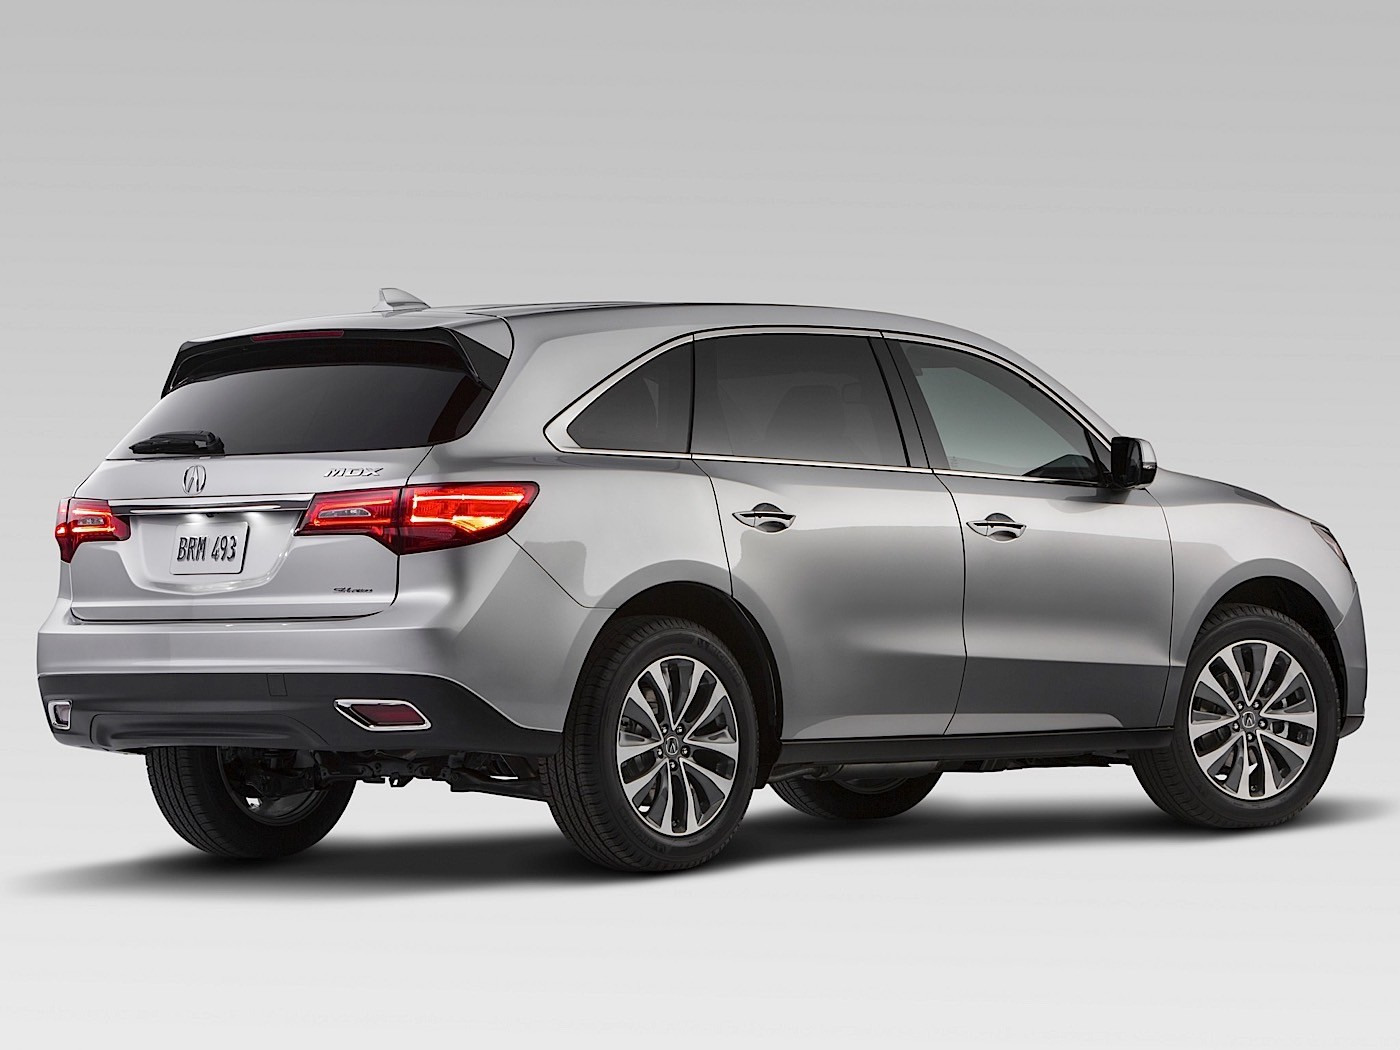 fl and used expensive in elegant more suv best lakeland check mdx acura small new parison of at